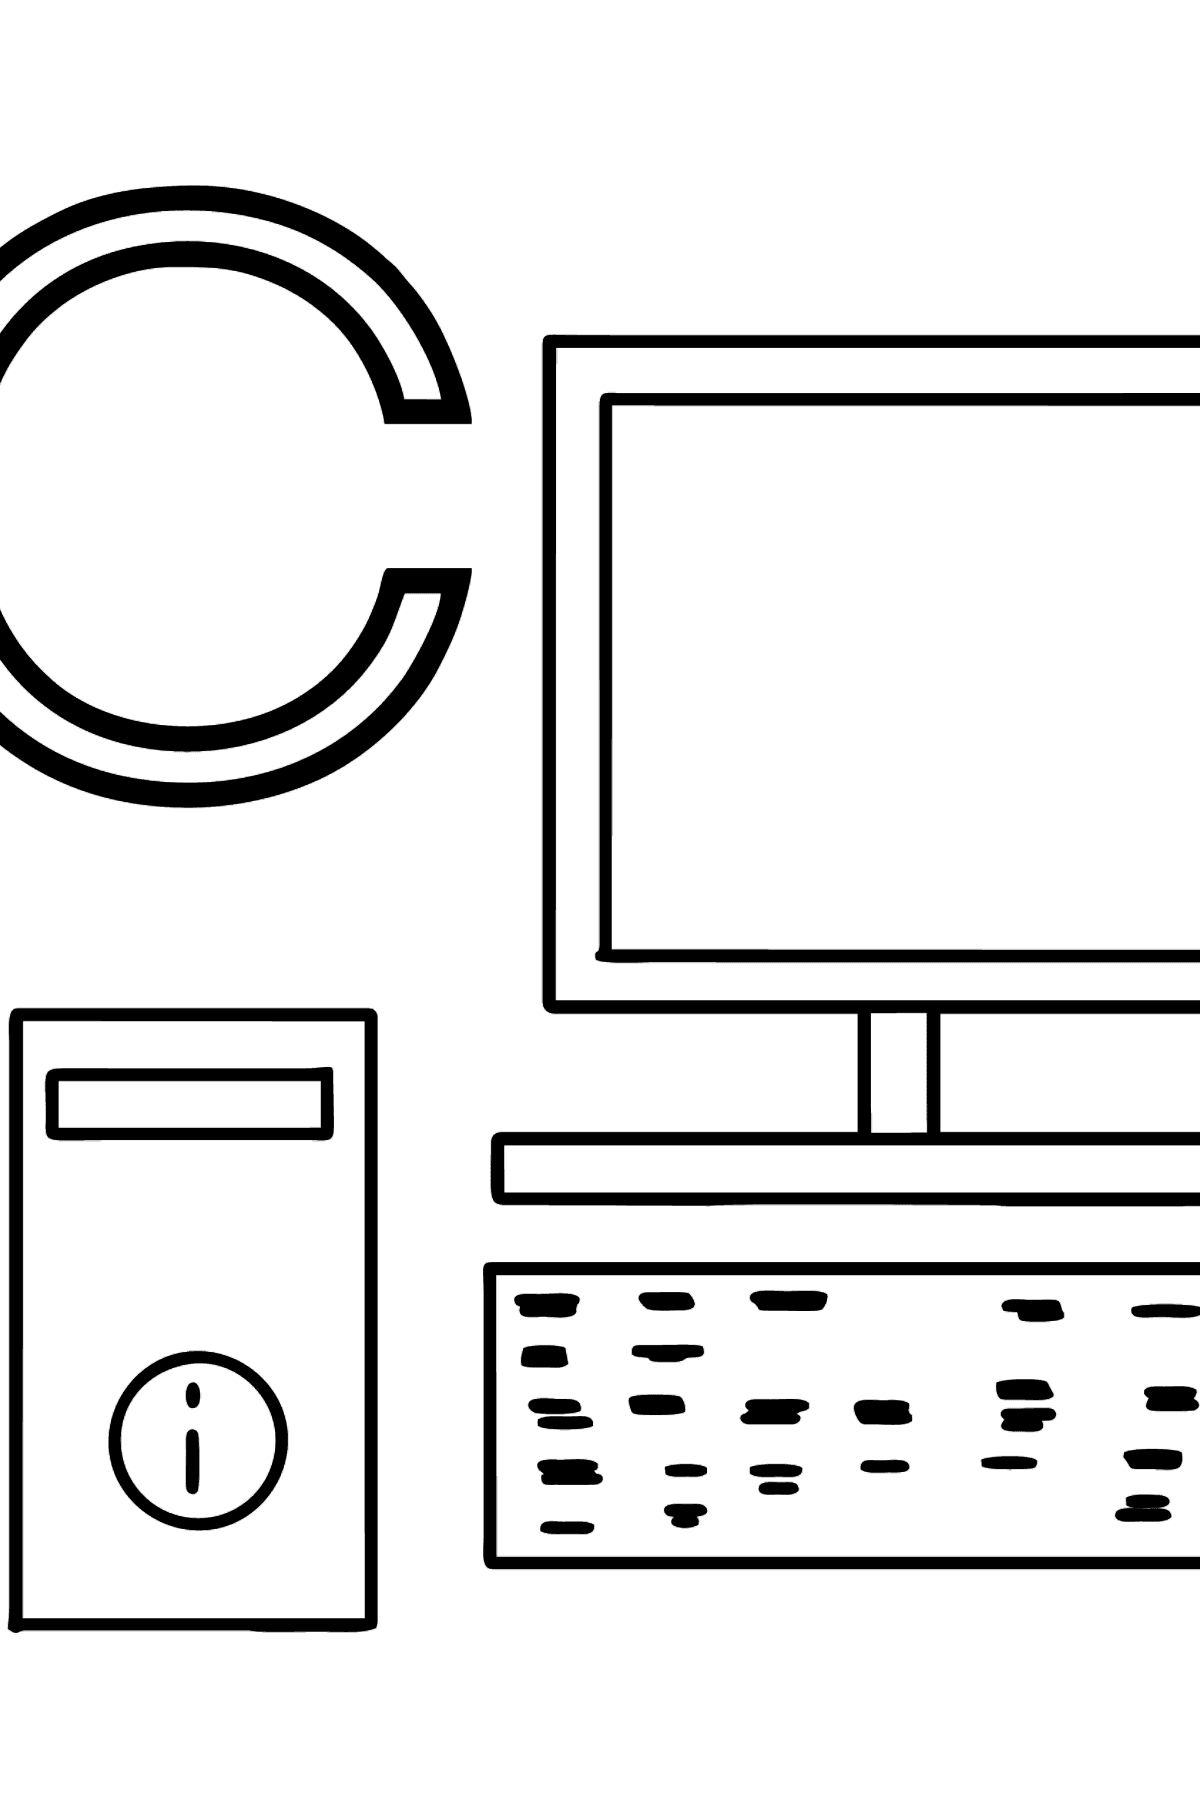 English Letter C coloring pages - COMPUTER - Coloring Pages for Kids